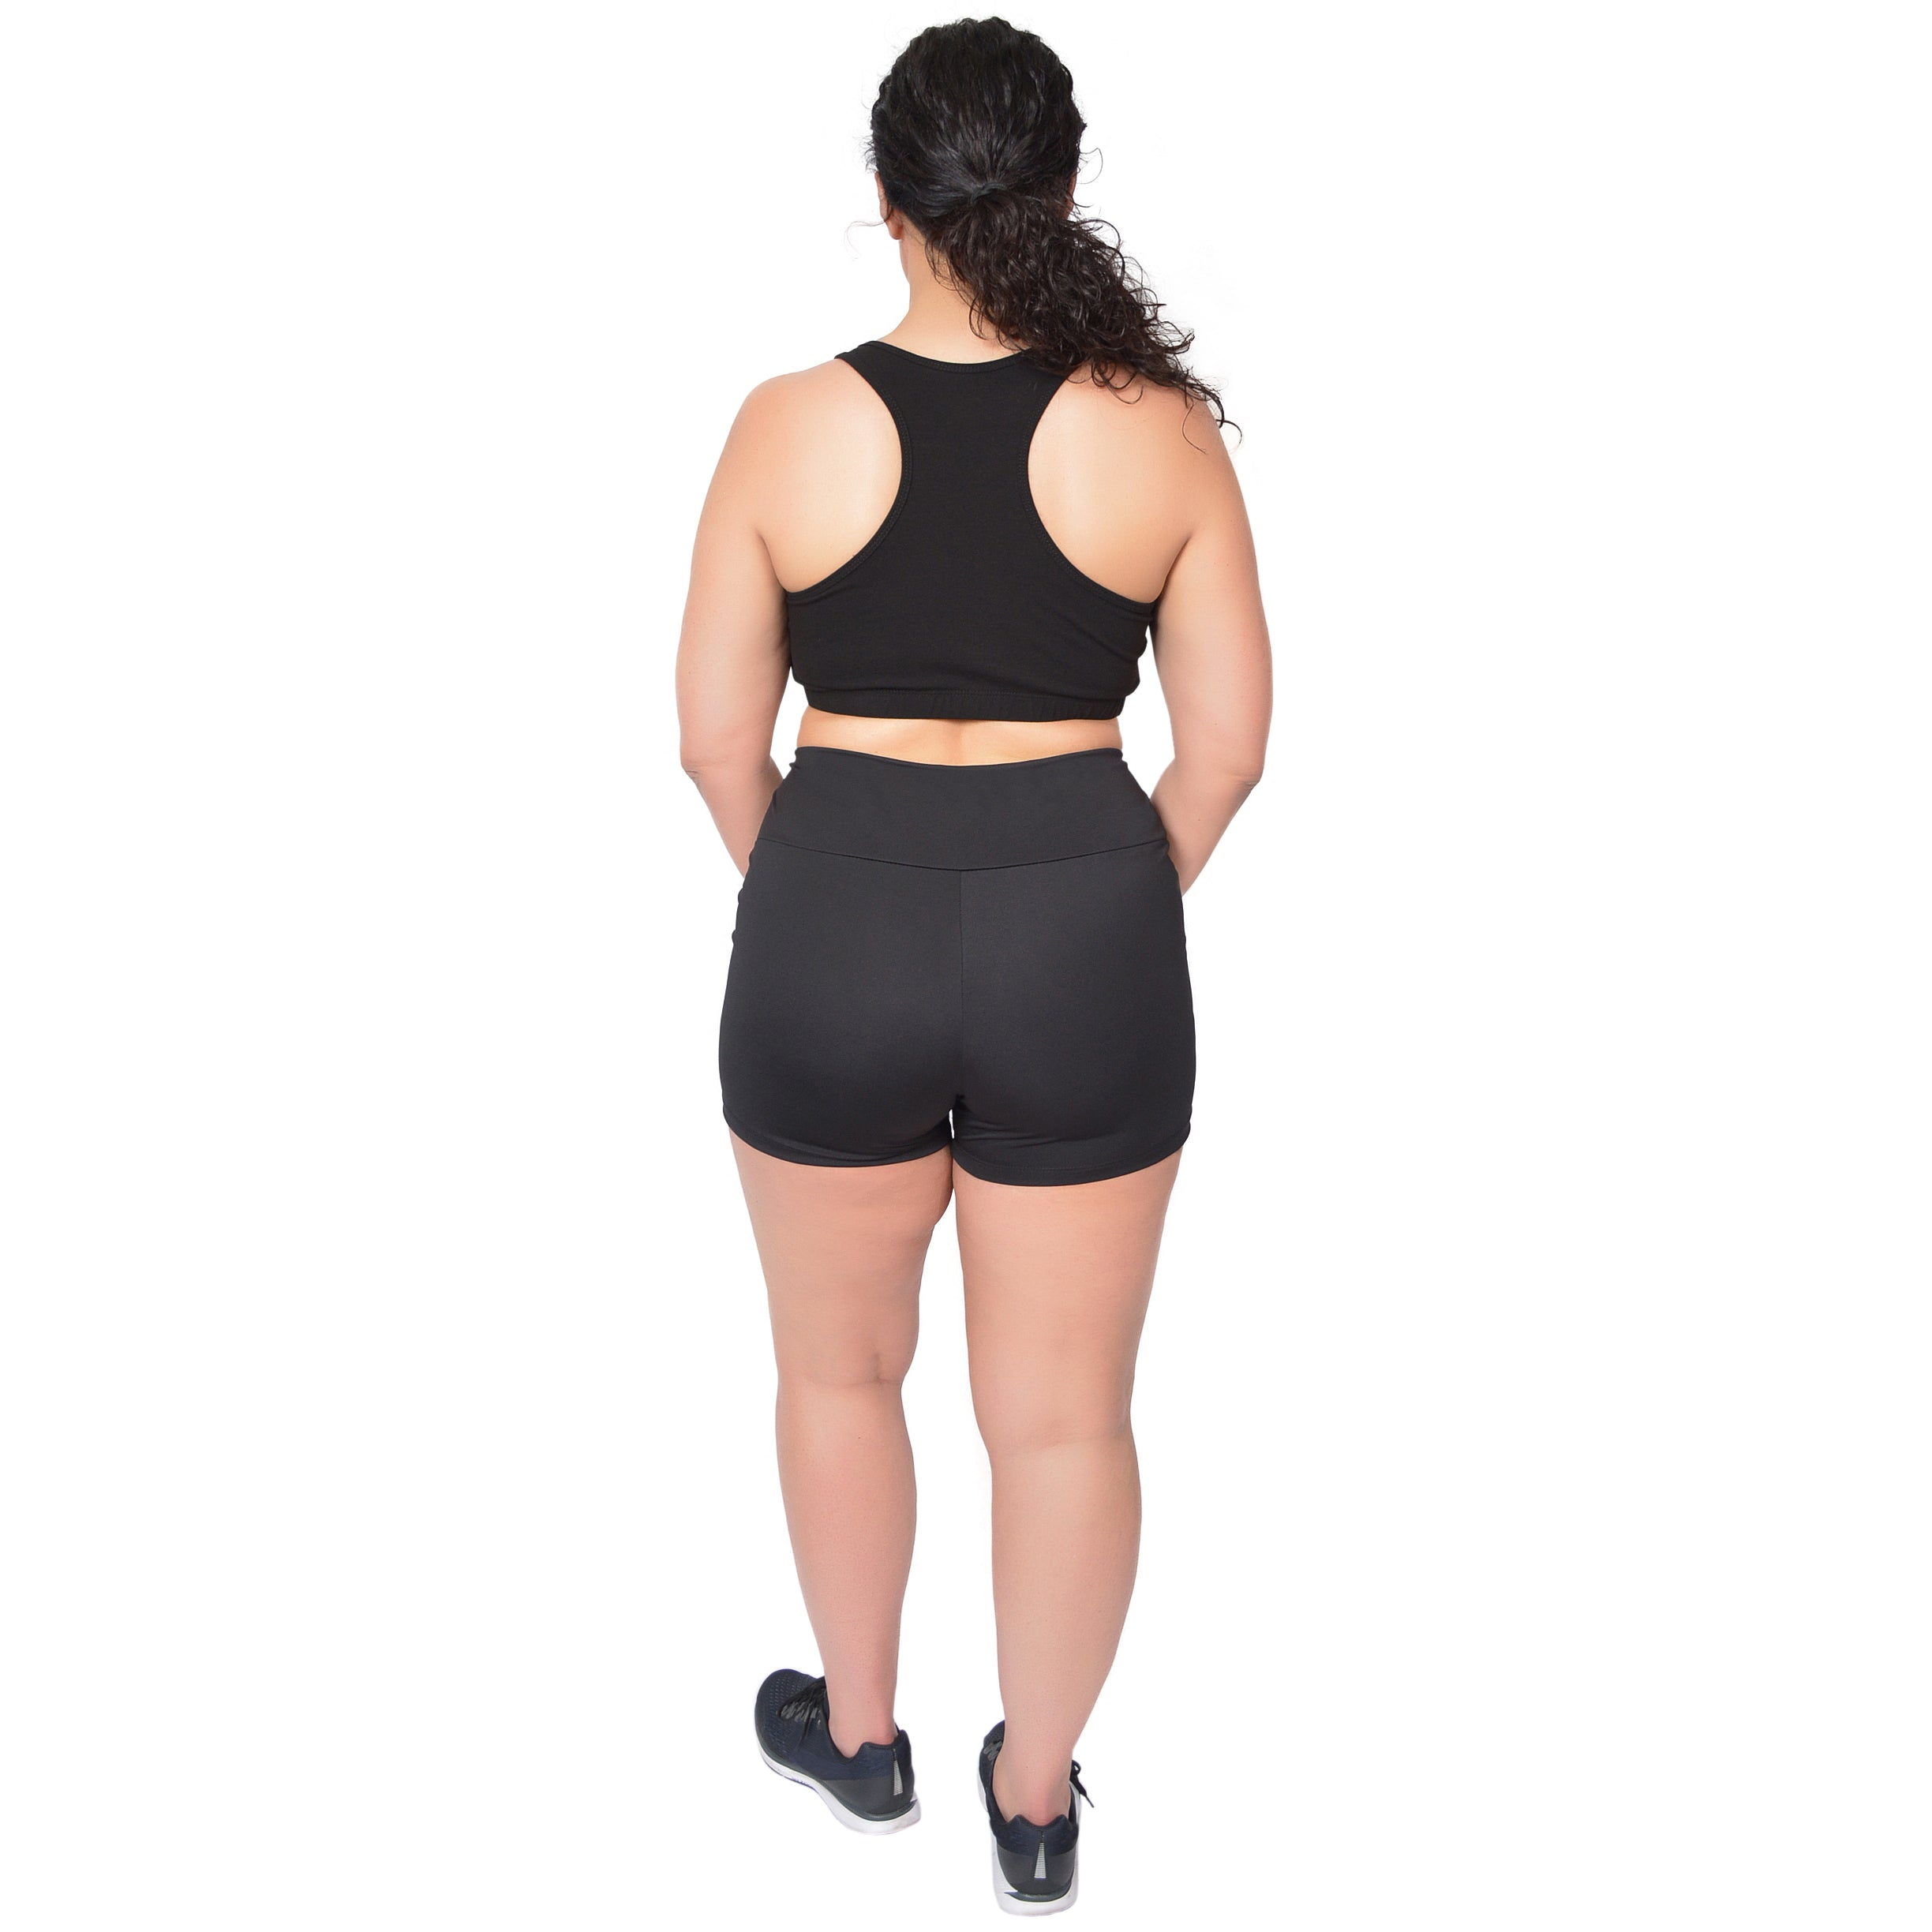 Plus Size Stretch Performance High Waist Athletic Booty Shorts